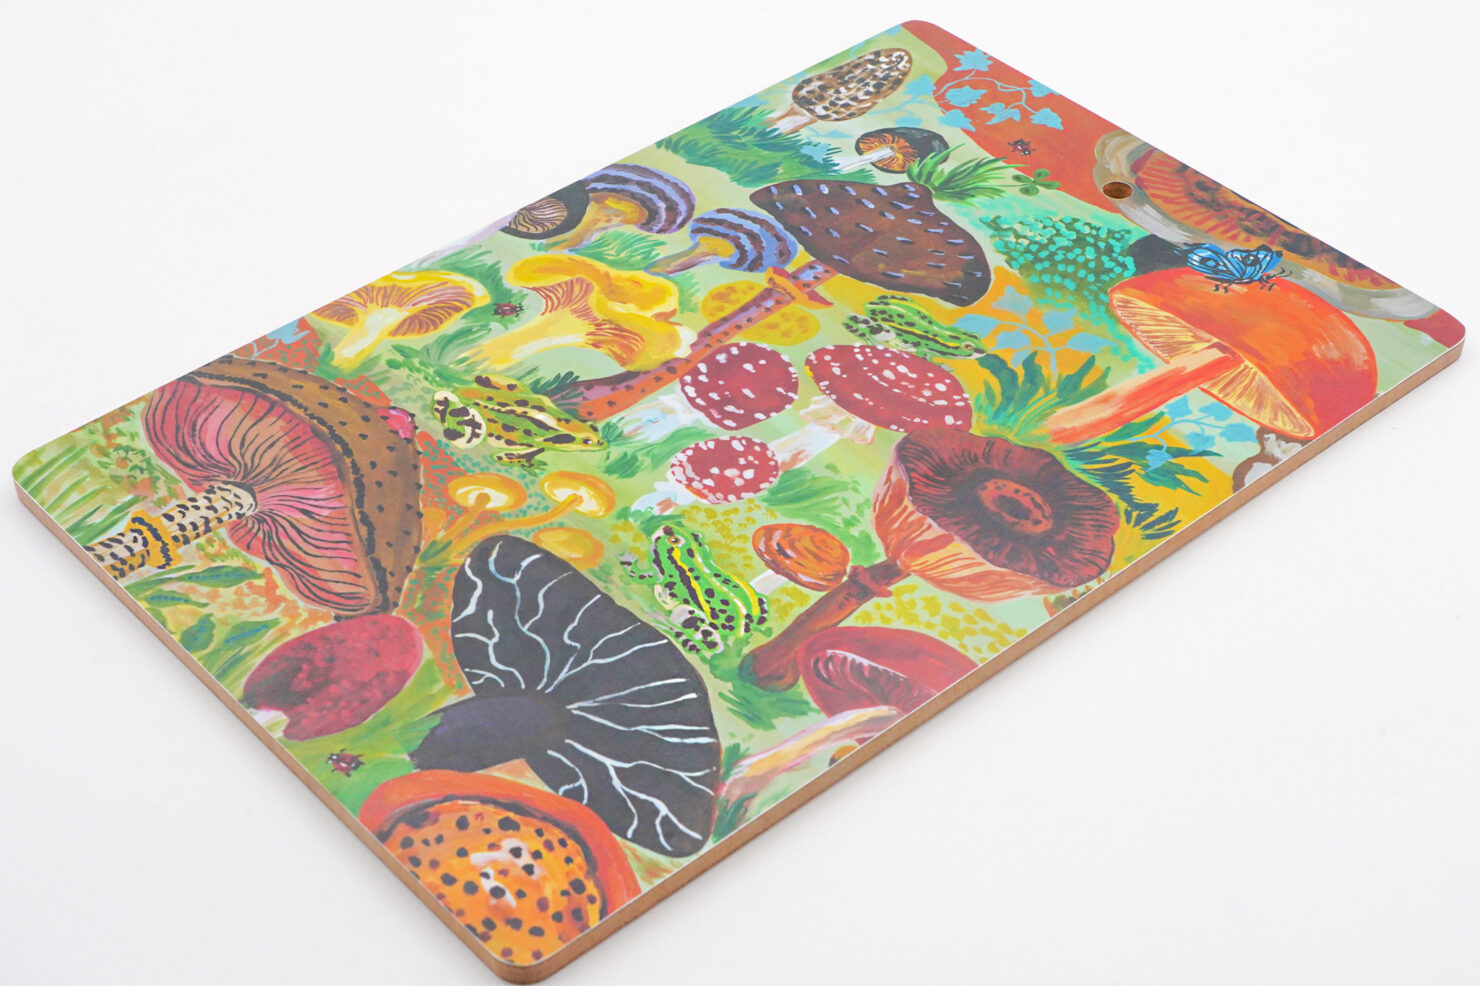 MUSHROOM FOREST CHOPPING BOARD BY NATHALIE LETE - AVENIDA HOME